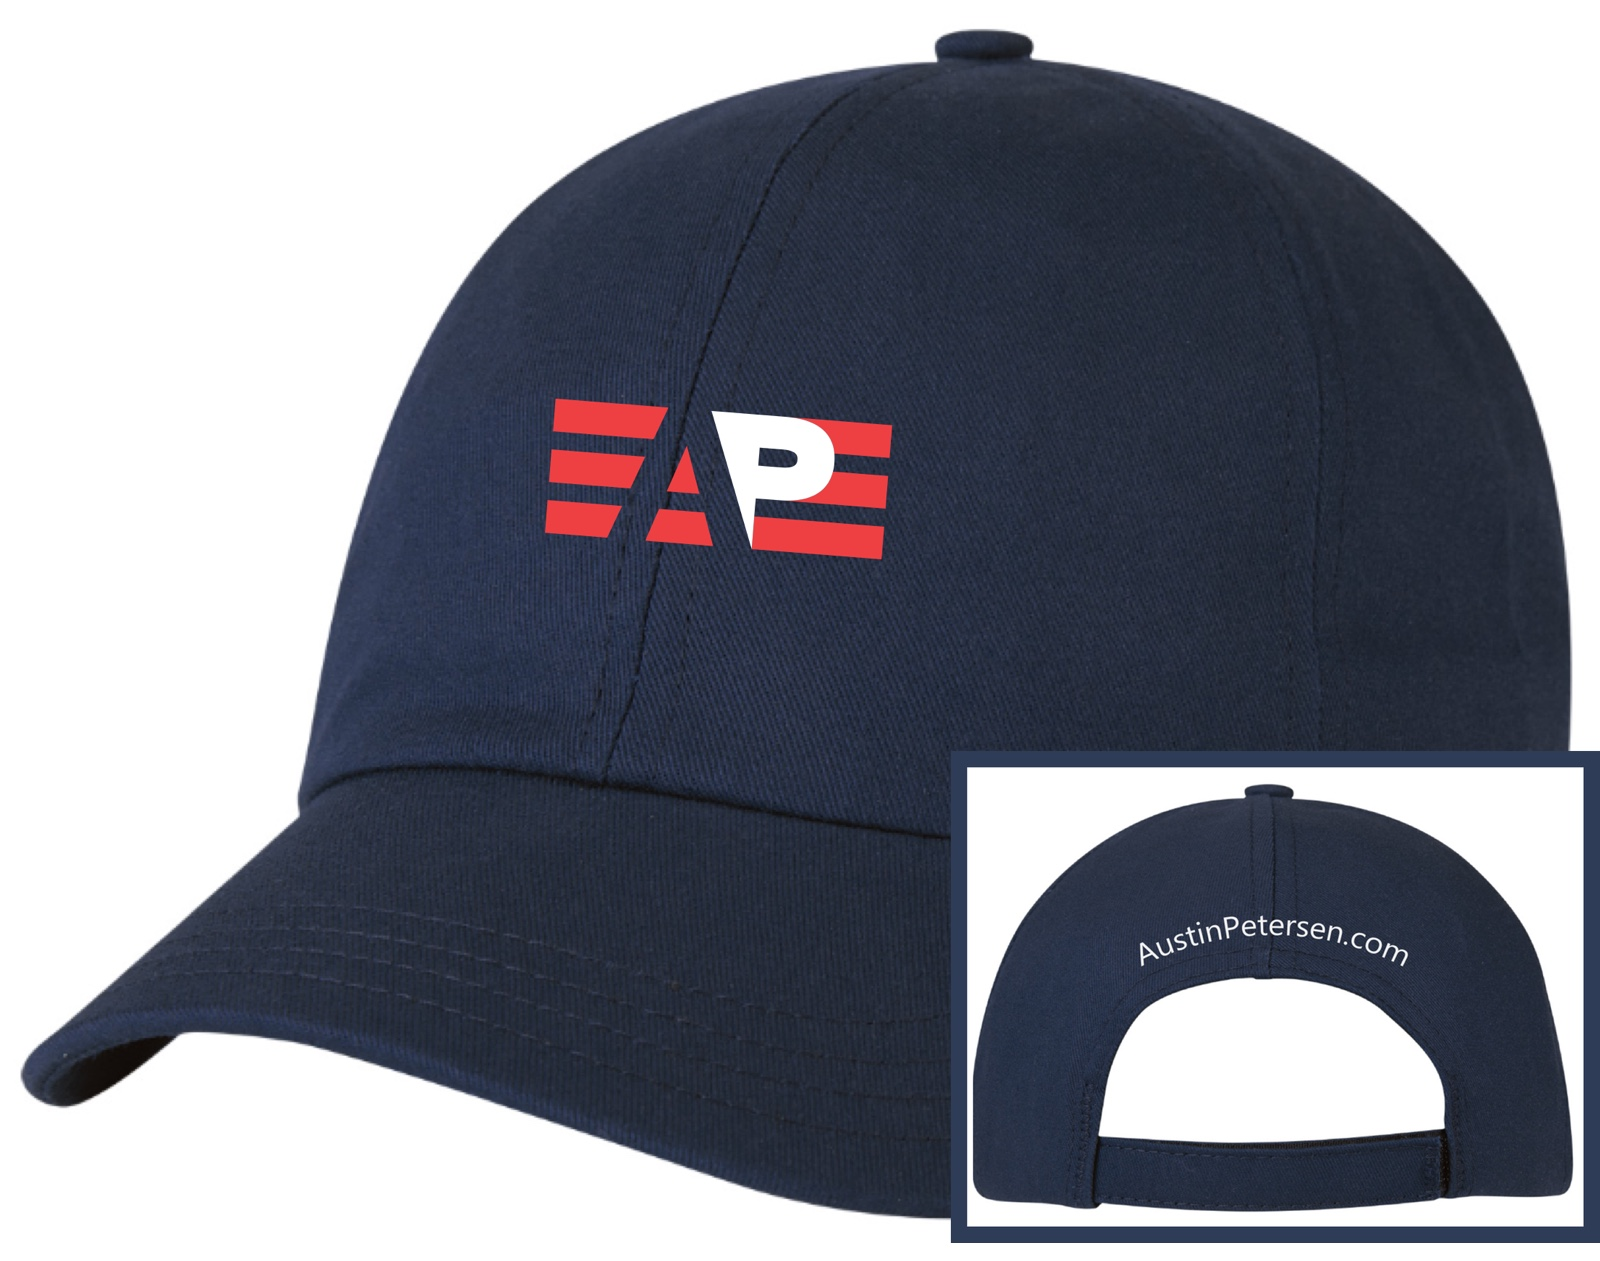 Official Campaign Hat (Navy) - $30